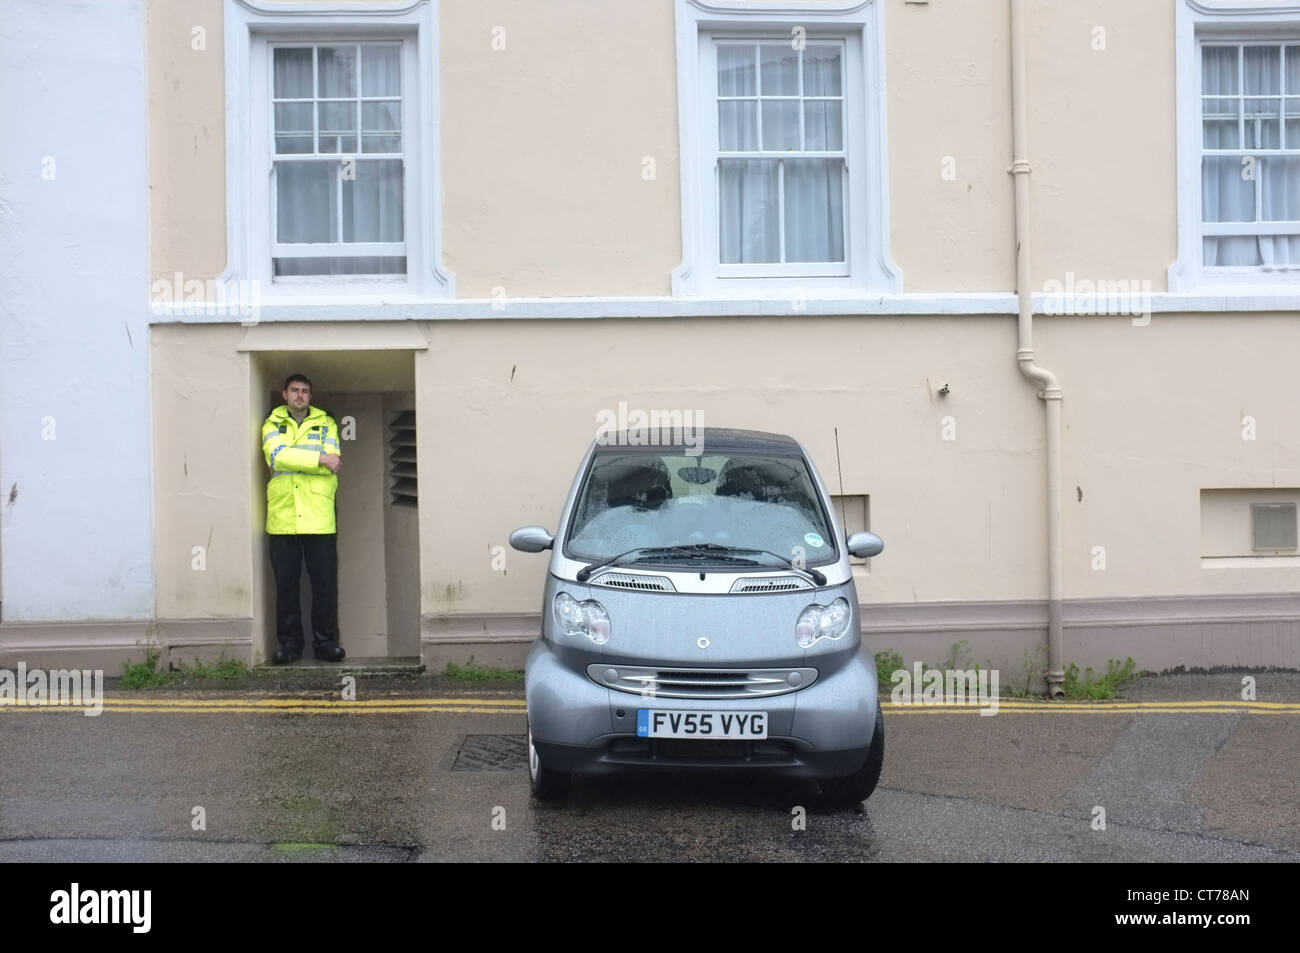 A badly parked car watched over by a policeman in Falmouth, Cornwall - Stock Image